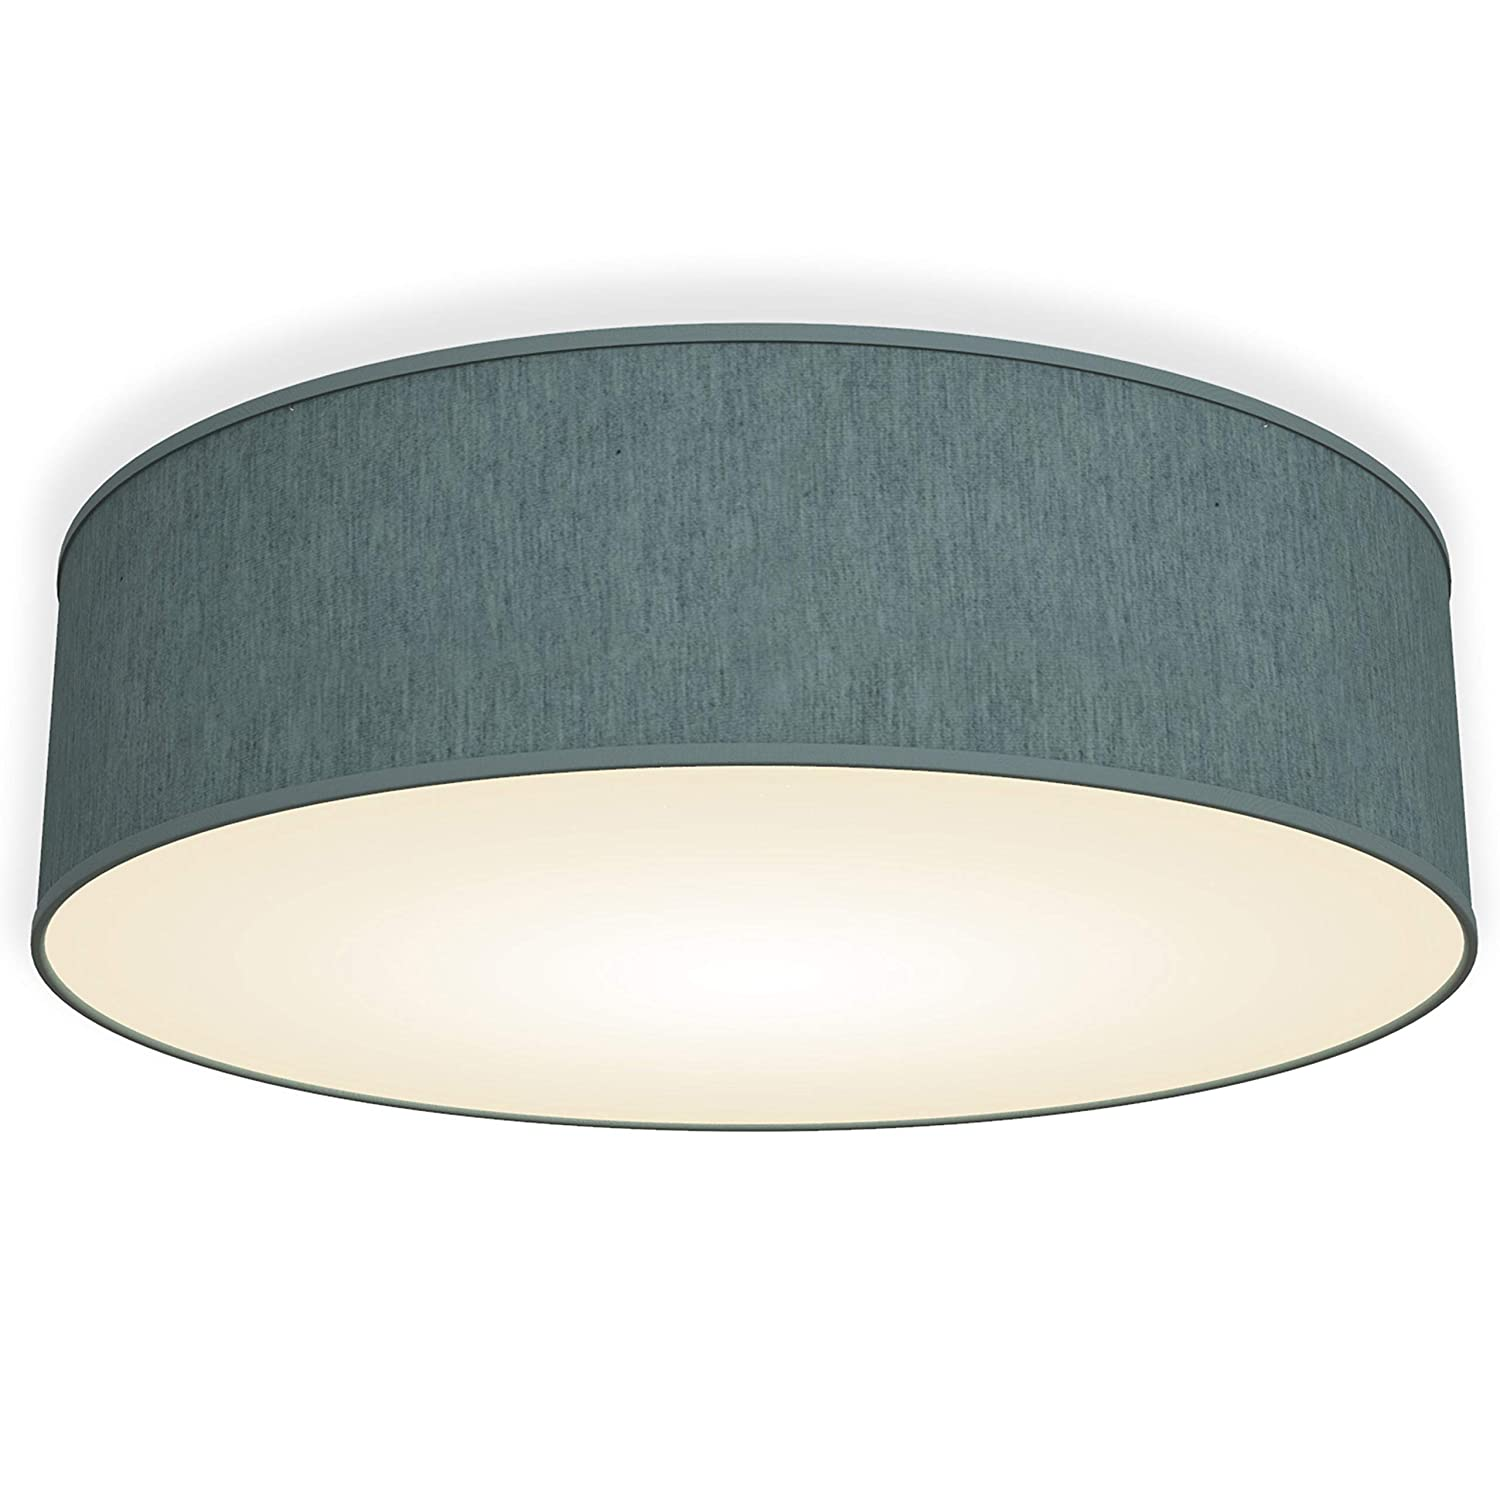 LED Fabric Ceiling lamp I Fabric Shade I Living Room I Children's Room I Teal-Grey I Round Bedroom Light I Easy to Install I E14 Light Bulb (not incl.) B.K.Licht BKL1101